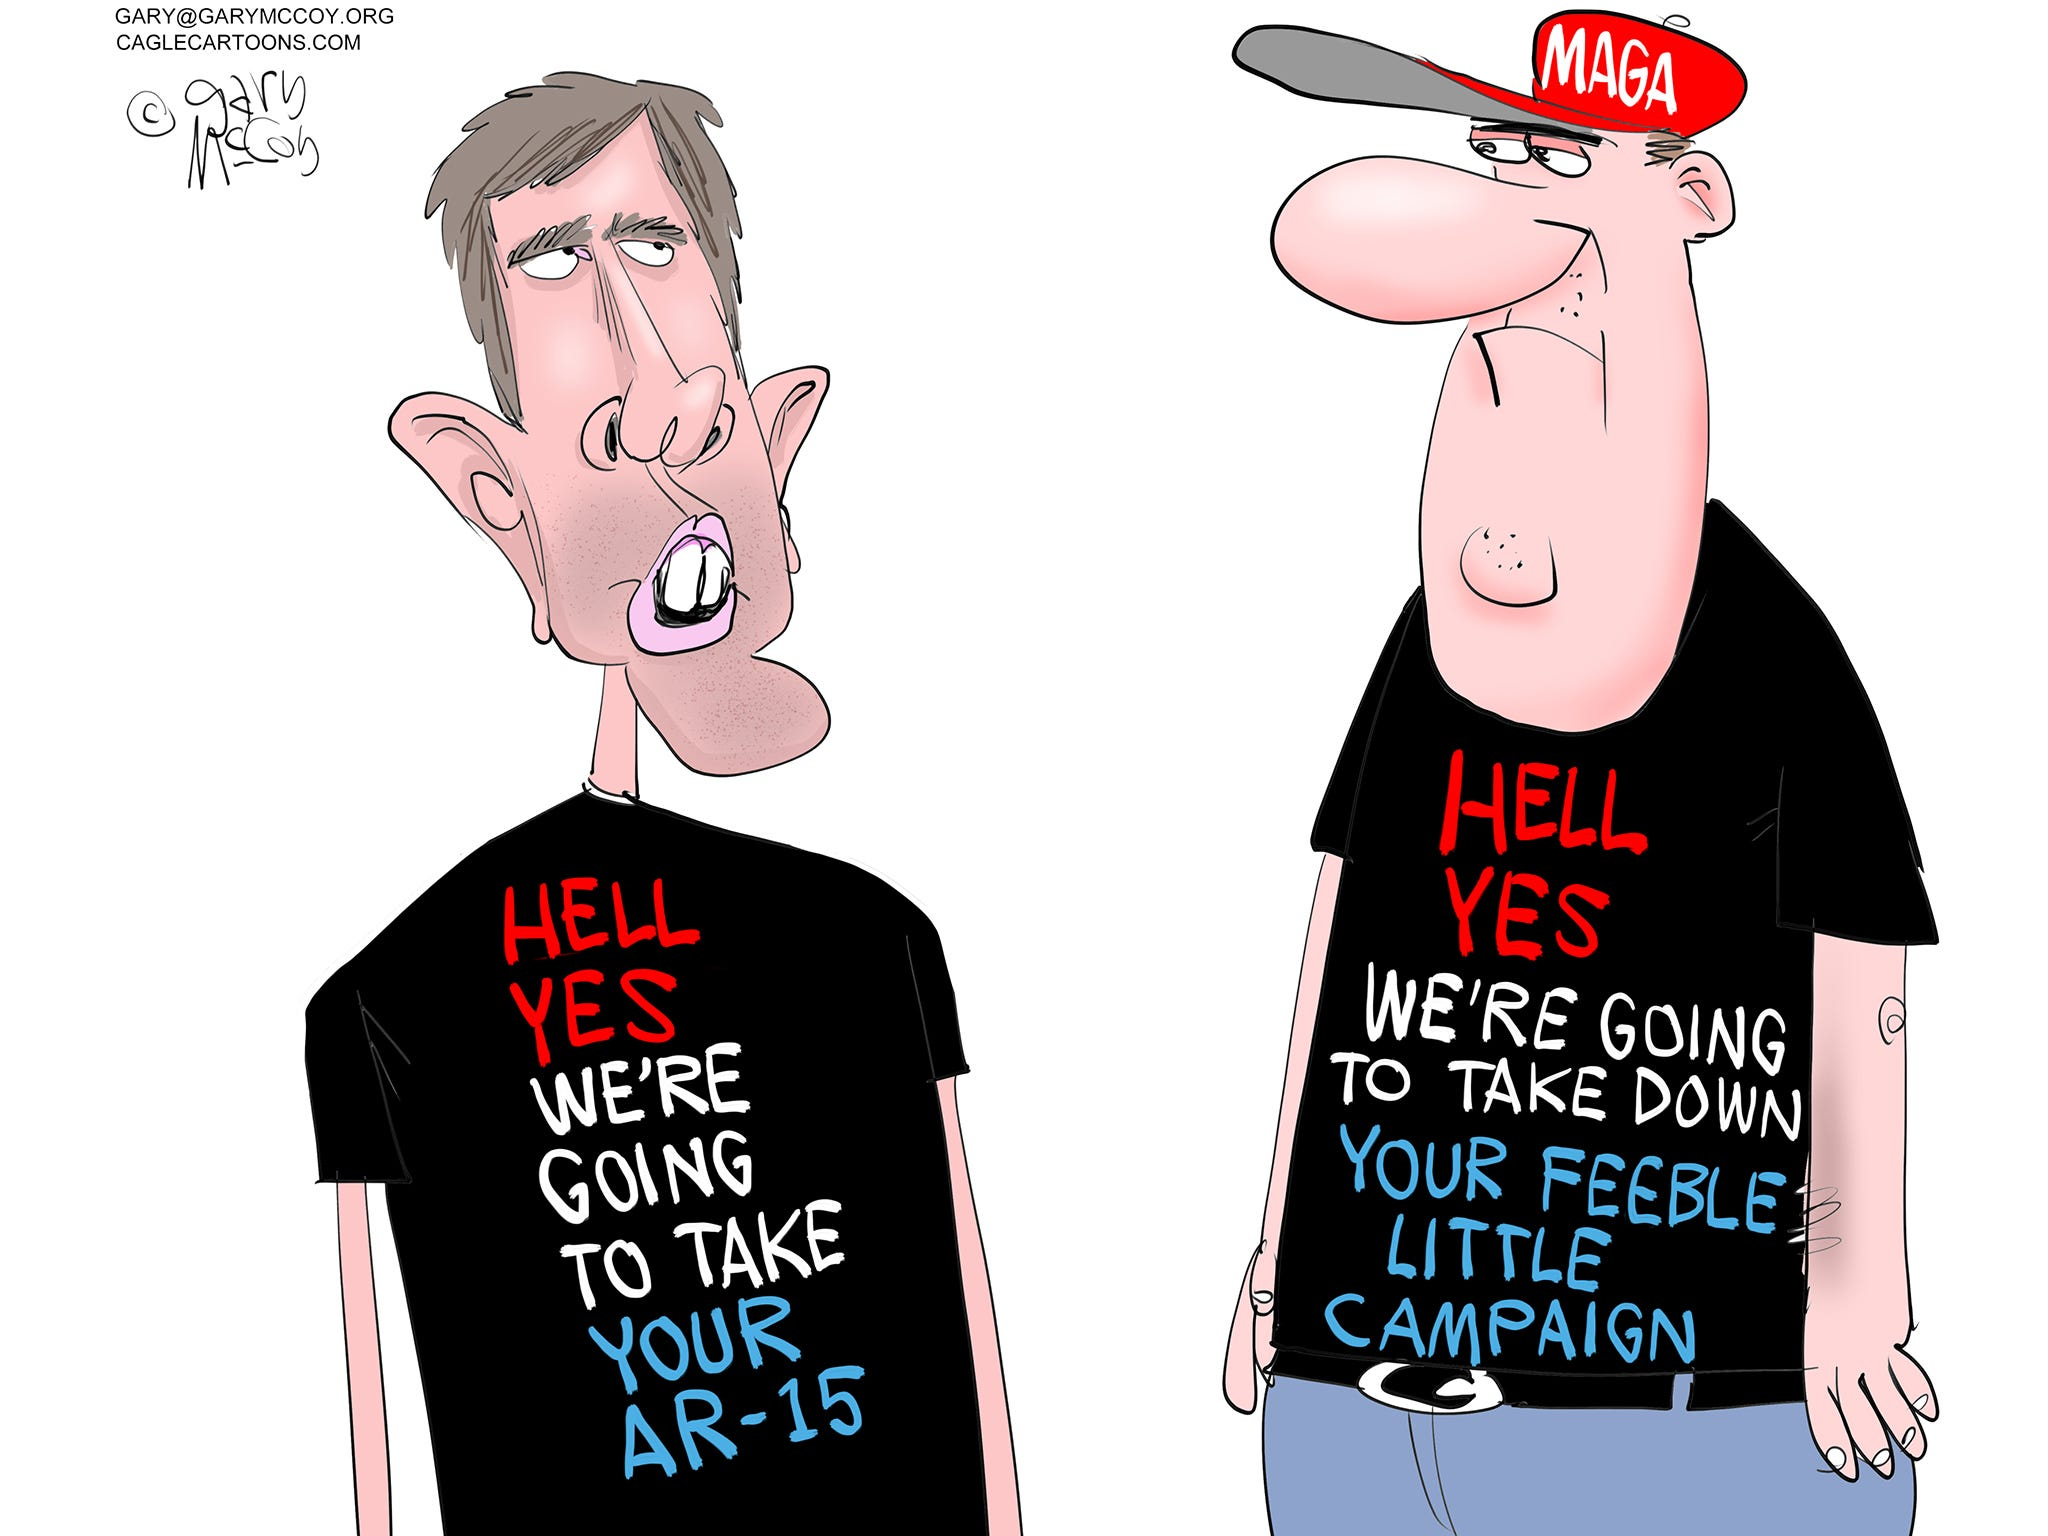 Hell, yes, Beto O'Rourke: Today's Toon